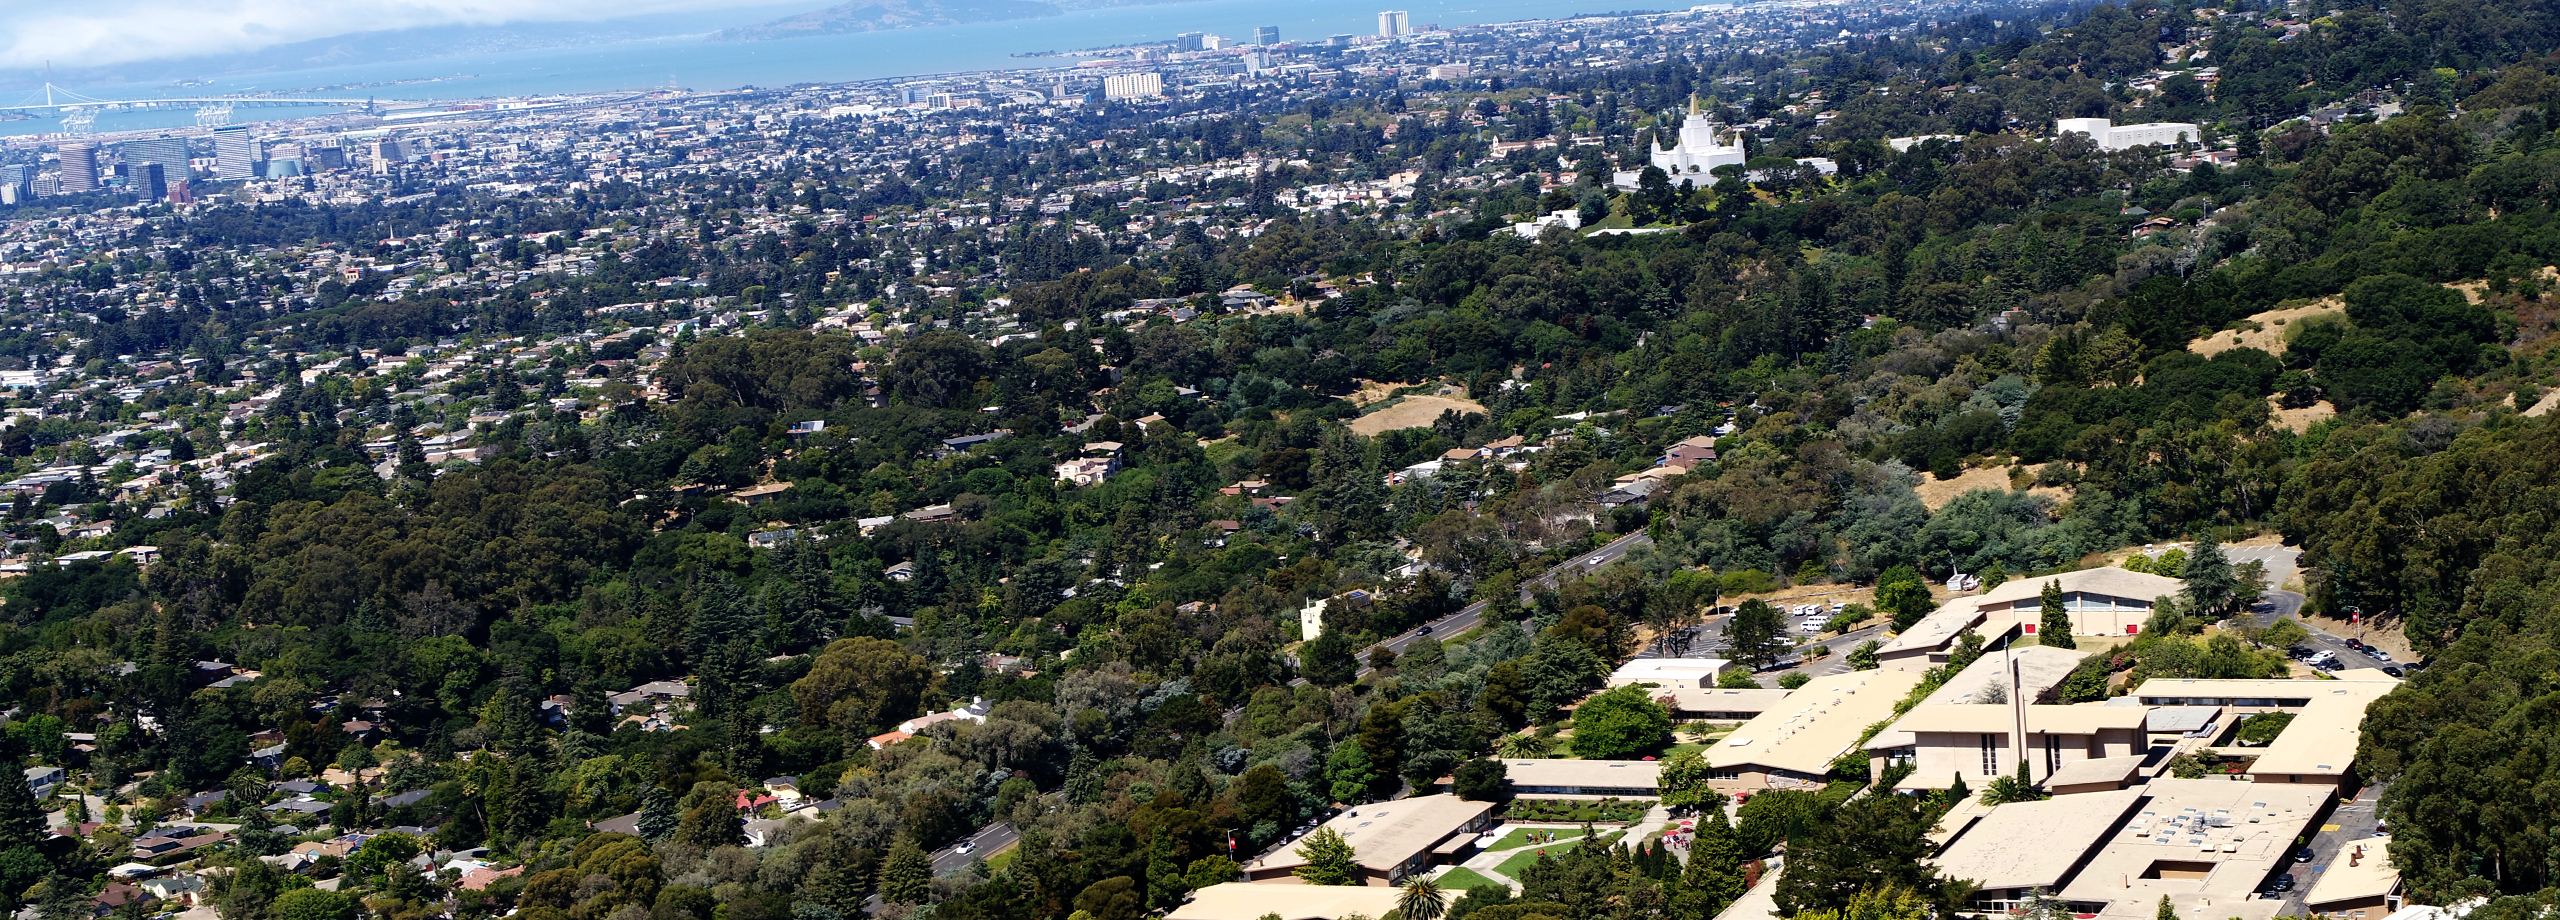 sky view of Oakland, California over Holy Names University campus